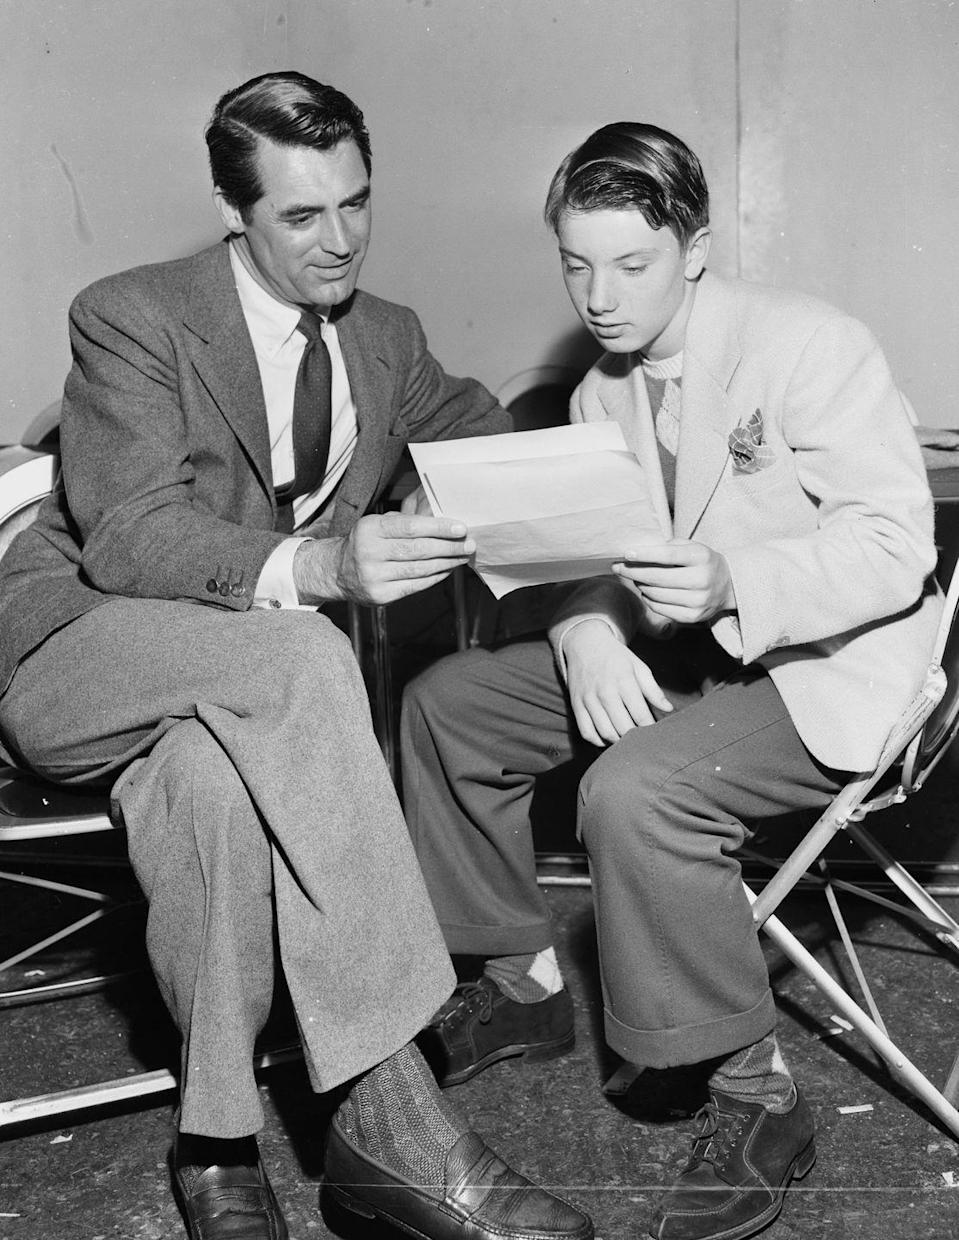 <p>The year he turned 40, Grant would appear in three movies, including one of his best, Arsenic and Old Lace. (In this picture, he's rehearsing lines for a radio program.)</p>